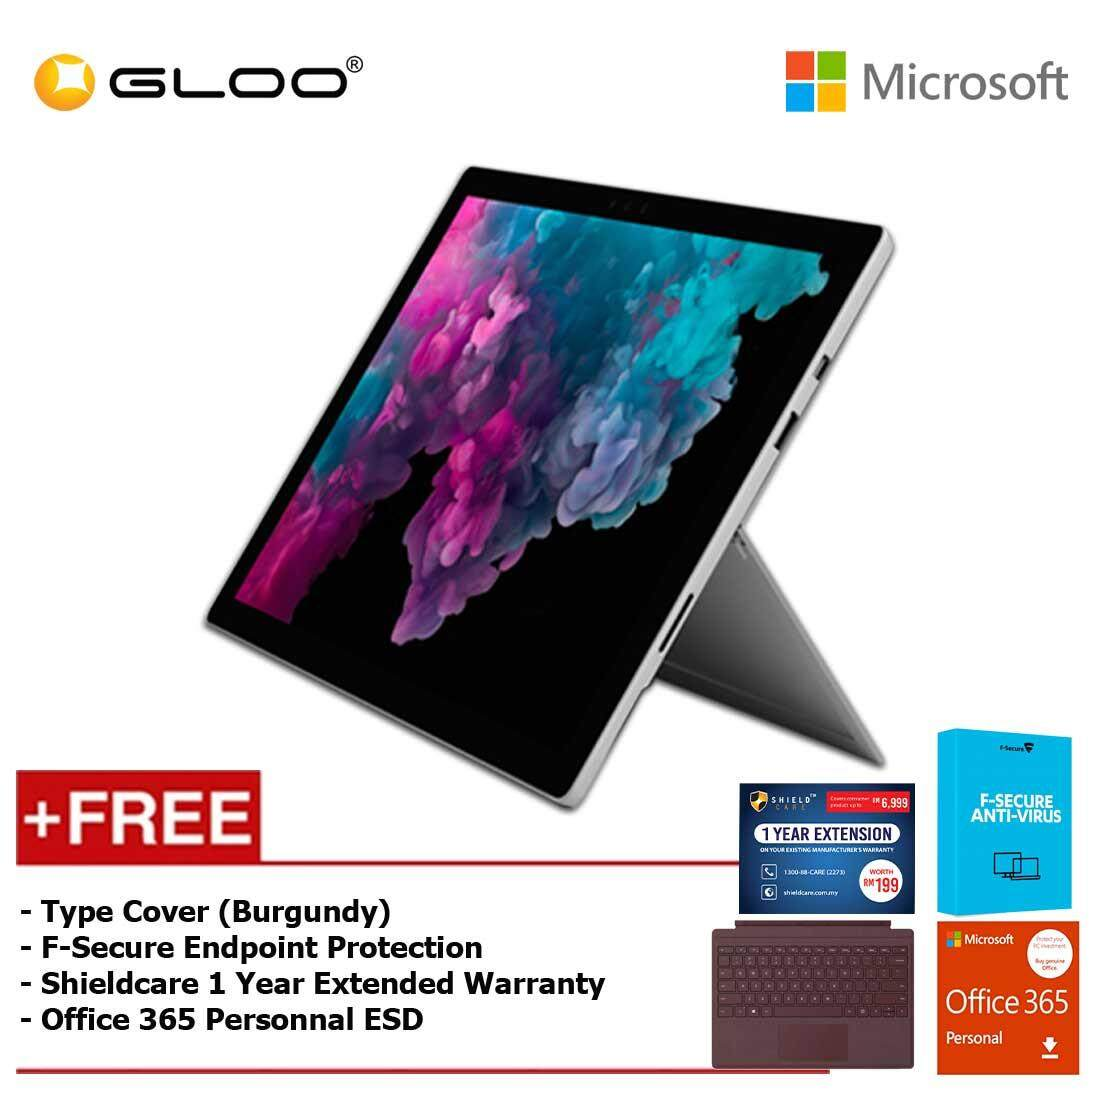 Microsoft Surface Pro 6 Core i5/8GB RAM -128GB + Type Cover Burgundy + Office 365 Personal (ESD) + F-Secure Endpoint Protection + Shieldcare 1 Year Extended Warranty